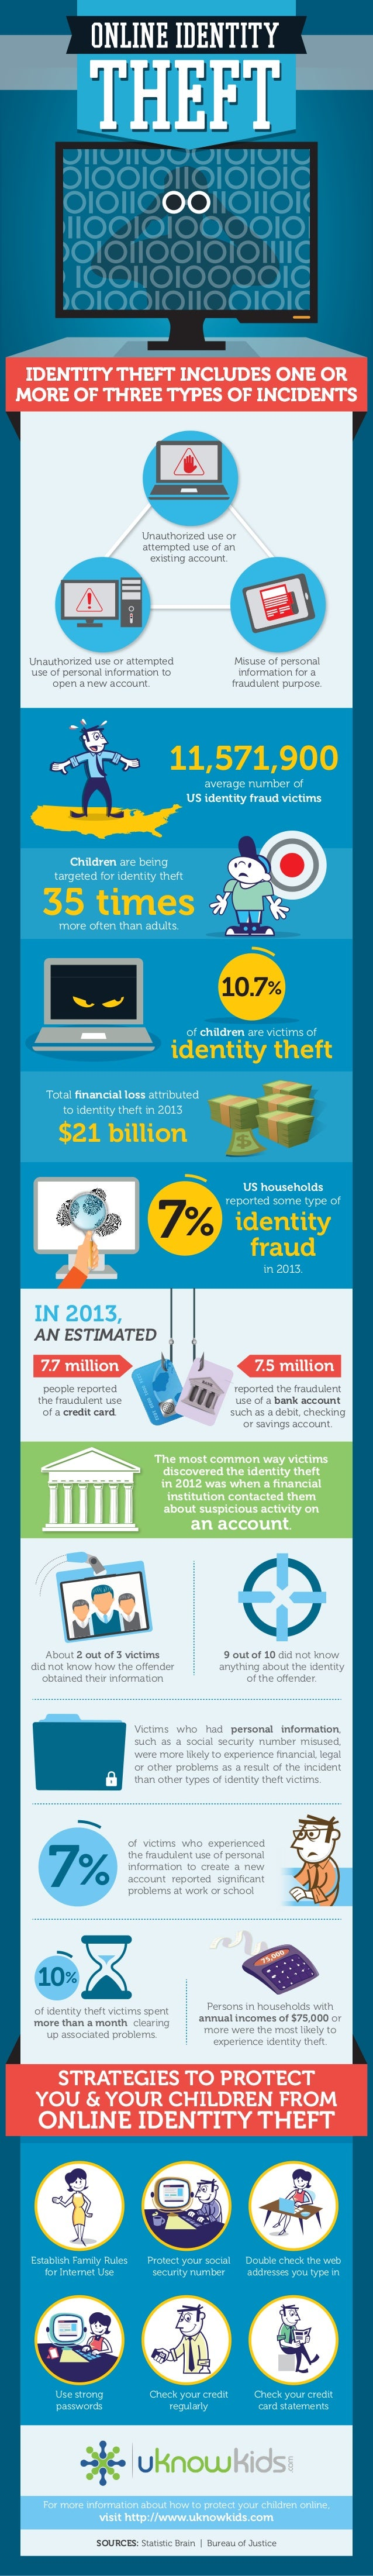 ONLINE IDENTITY THEFTTHEFT Unauthorized use or attempted use of personal information to open a new account. Unauthorized u...